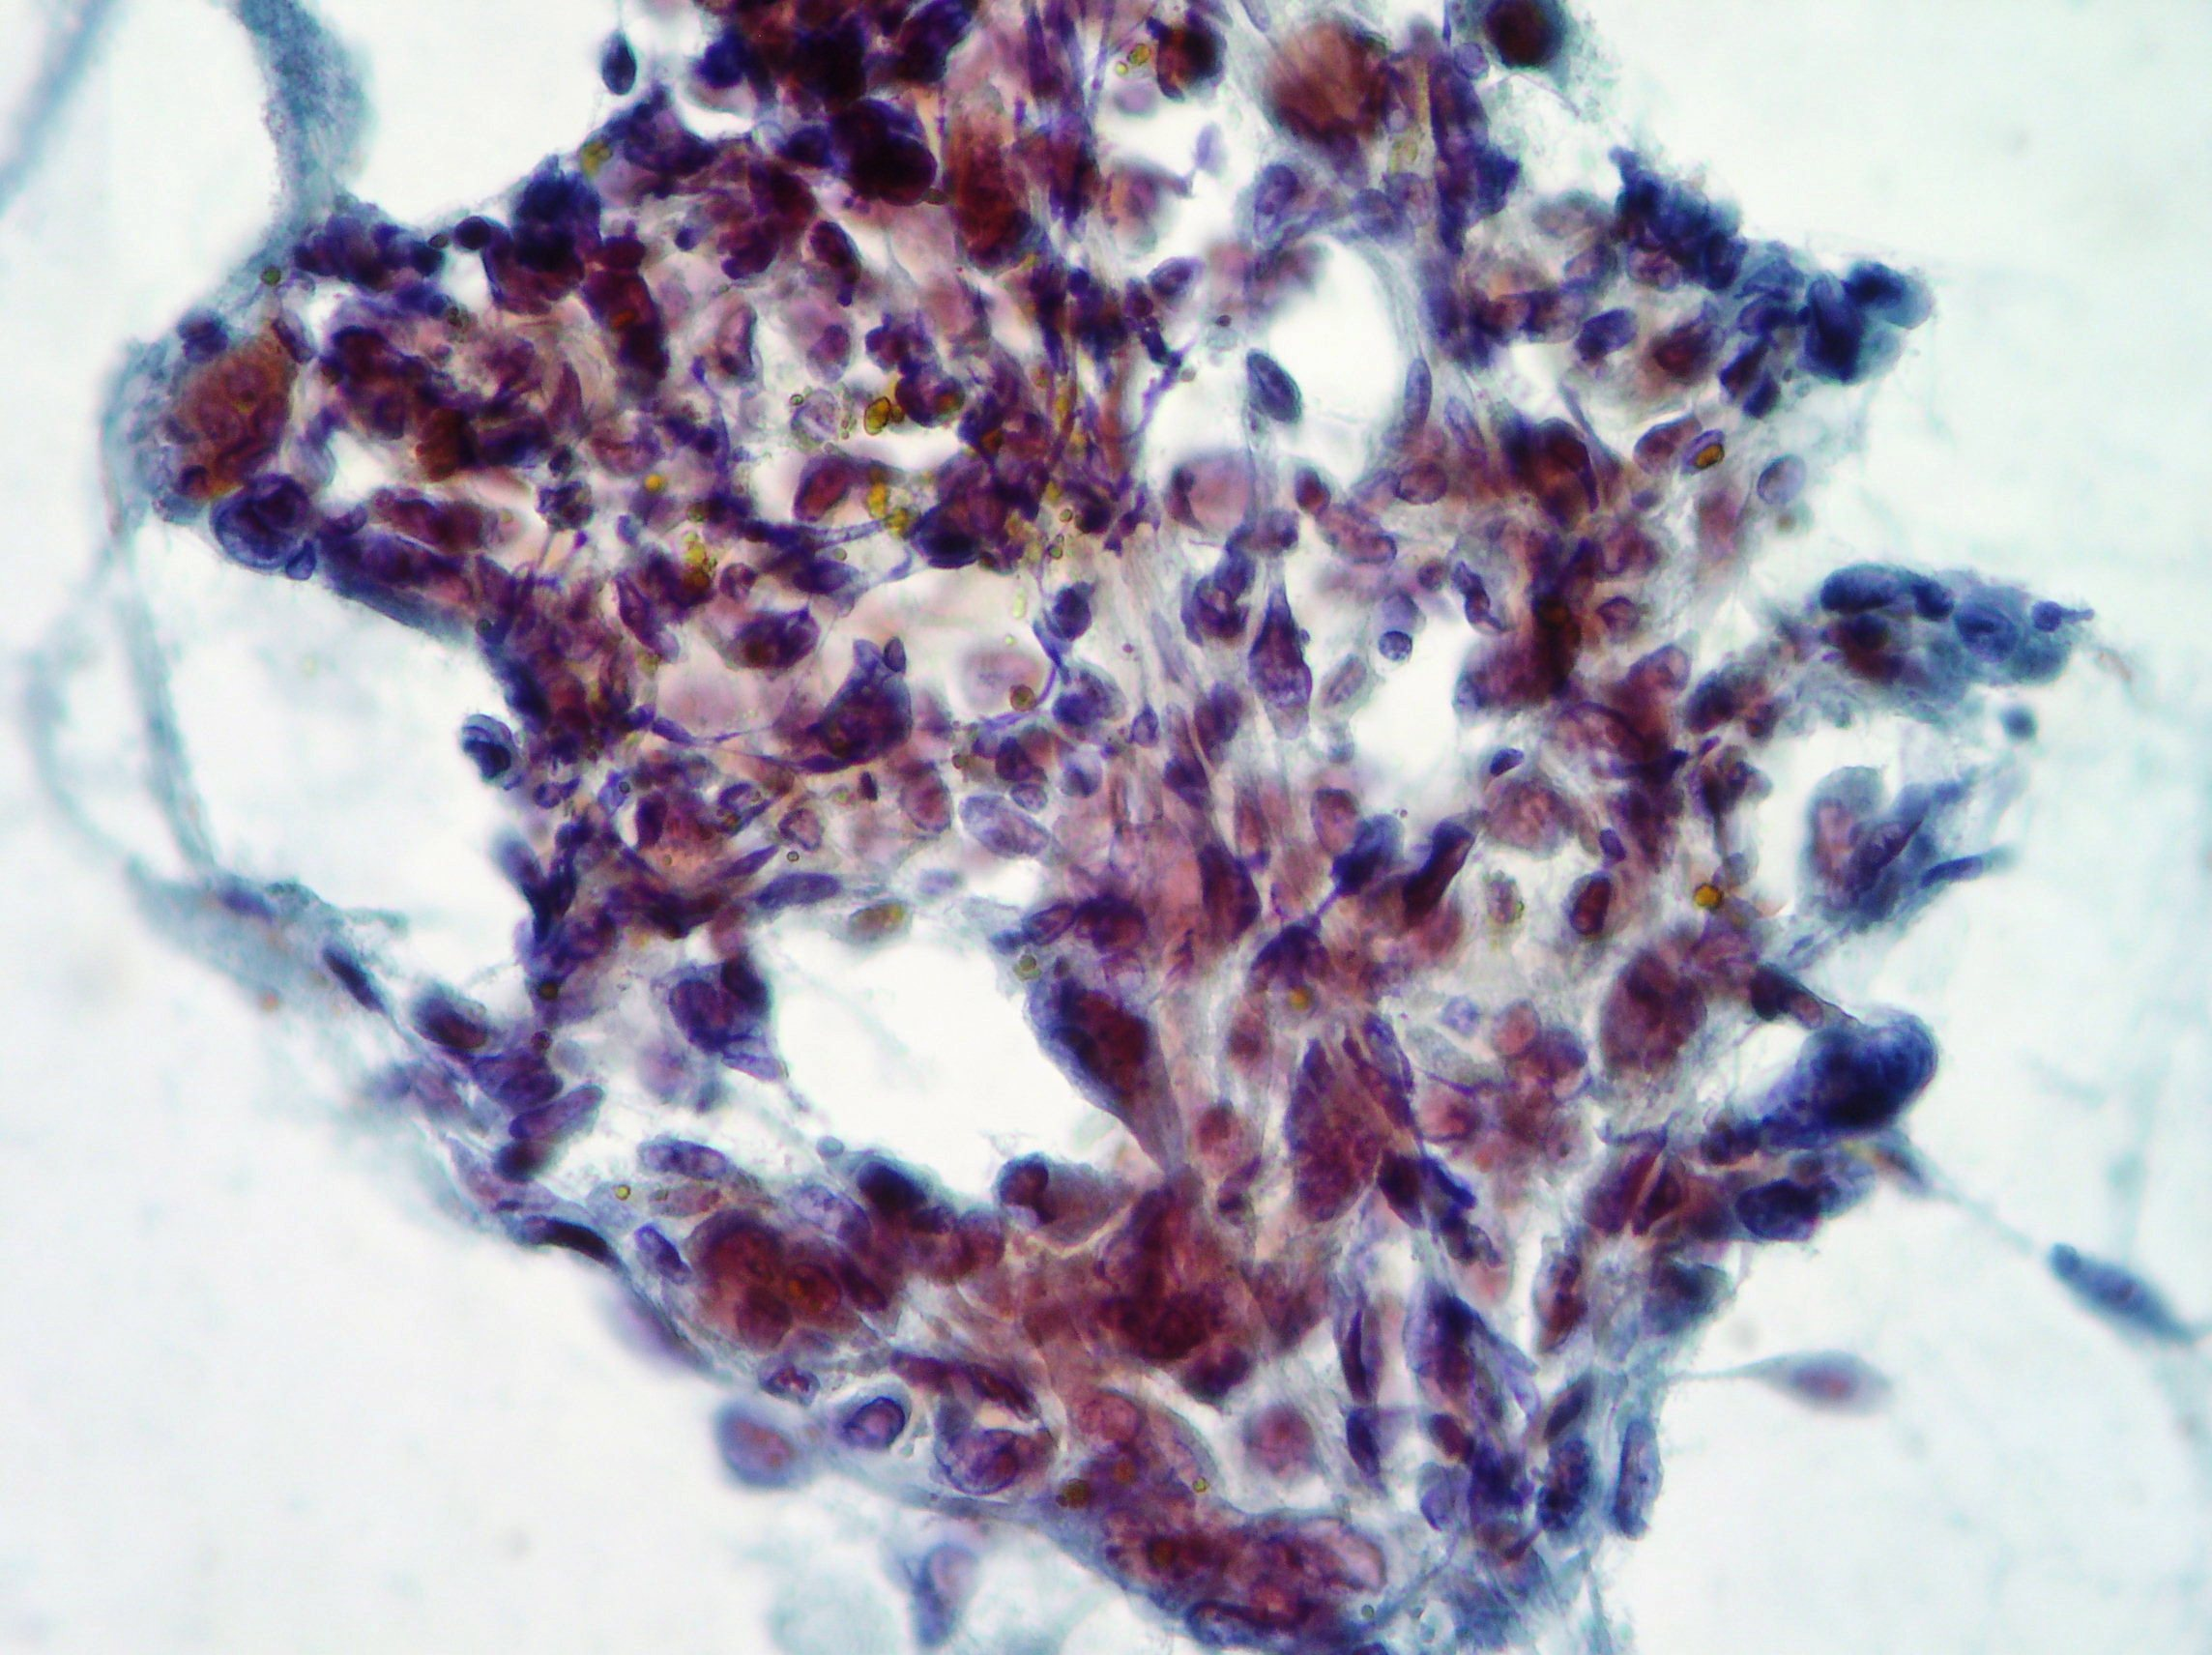 Anaplastic pancreatic cancer